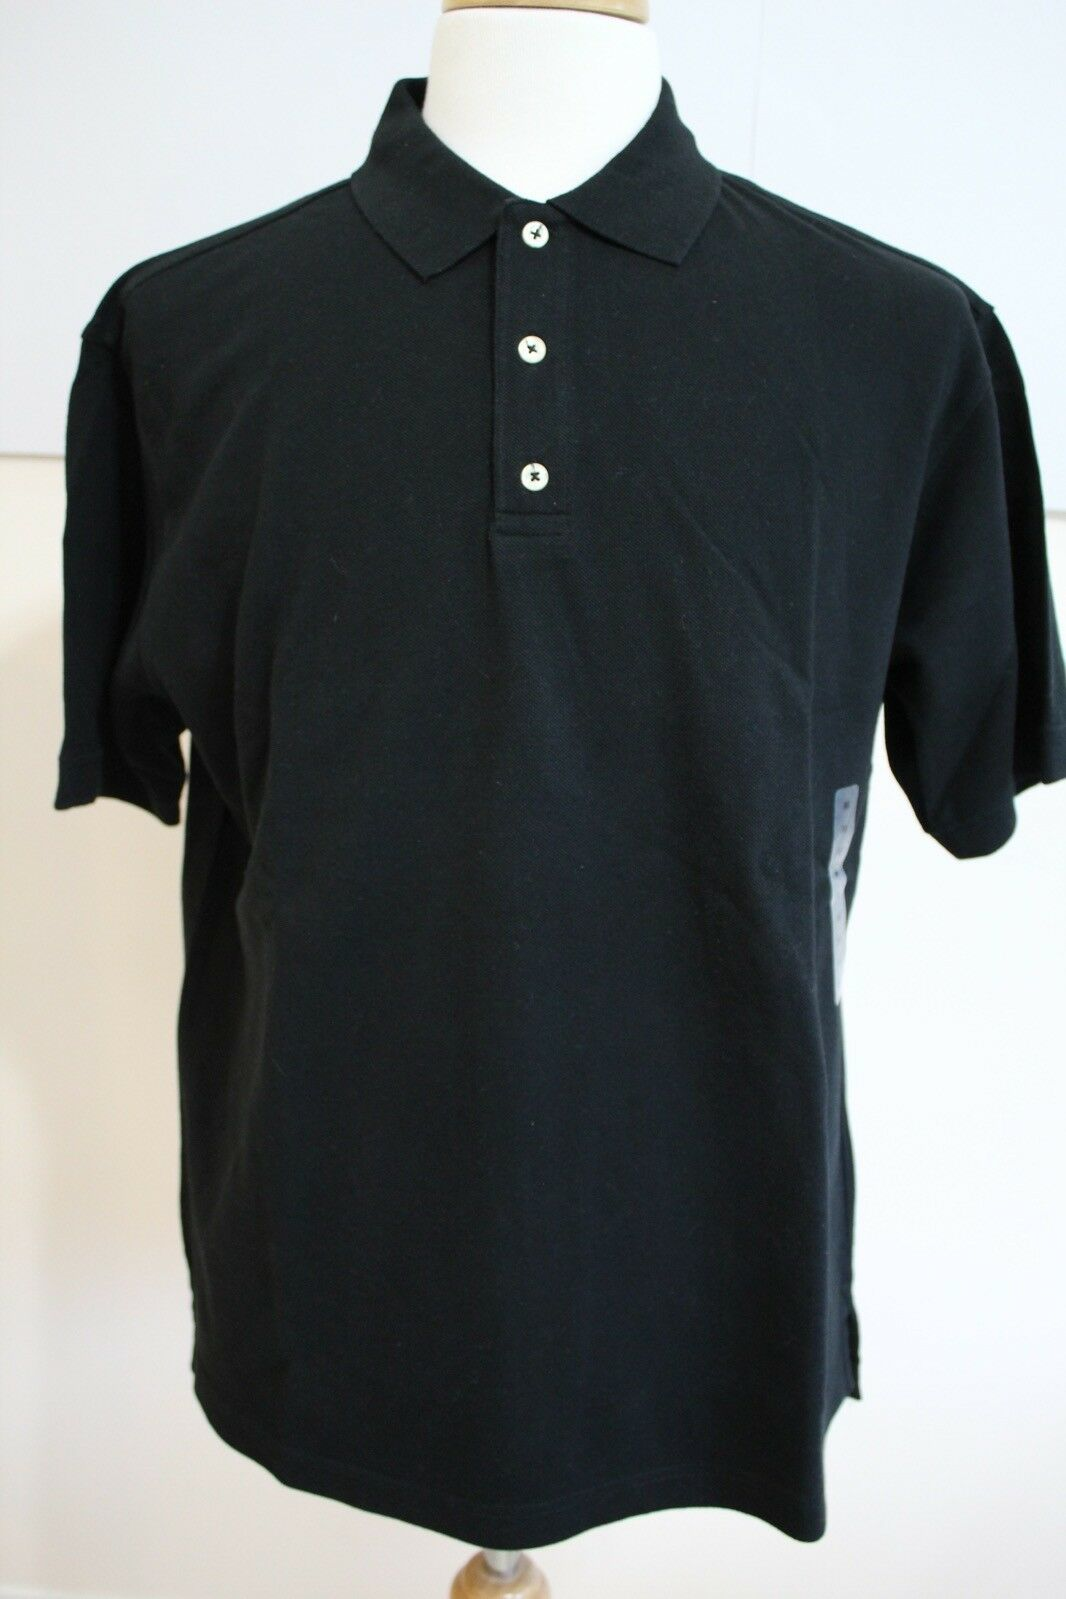 Gap Select Men's Short Sleeve Polo Shirt size M New image 2